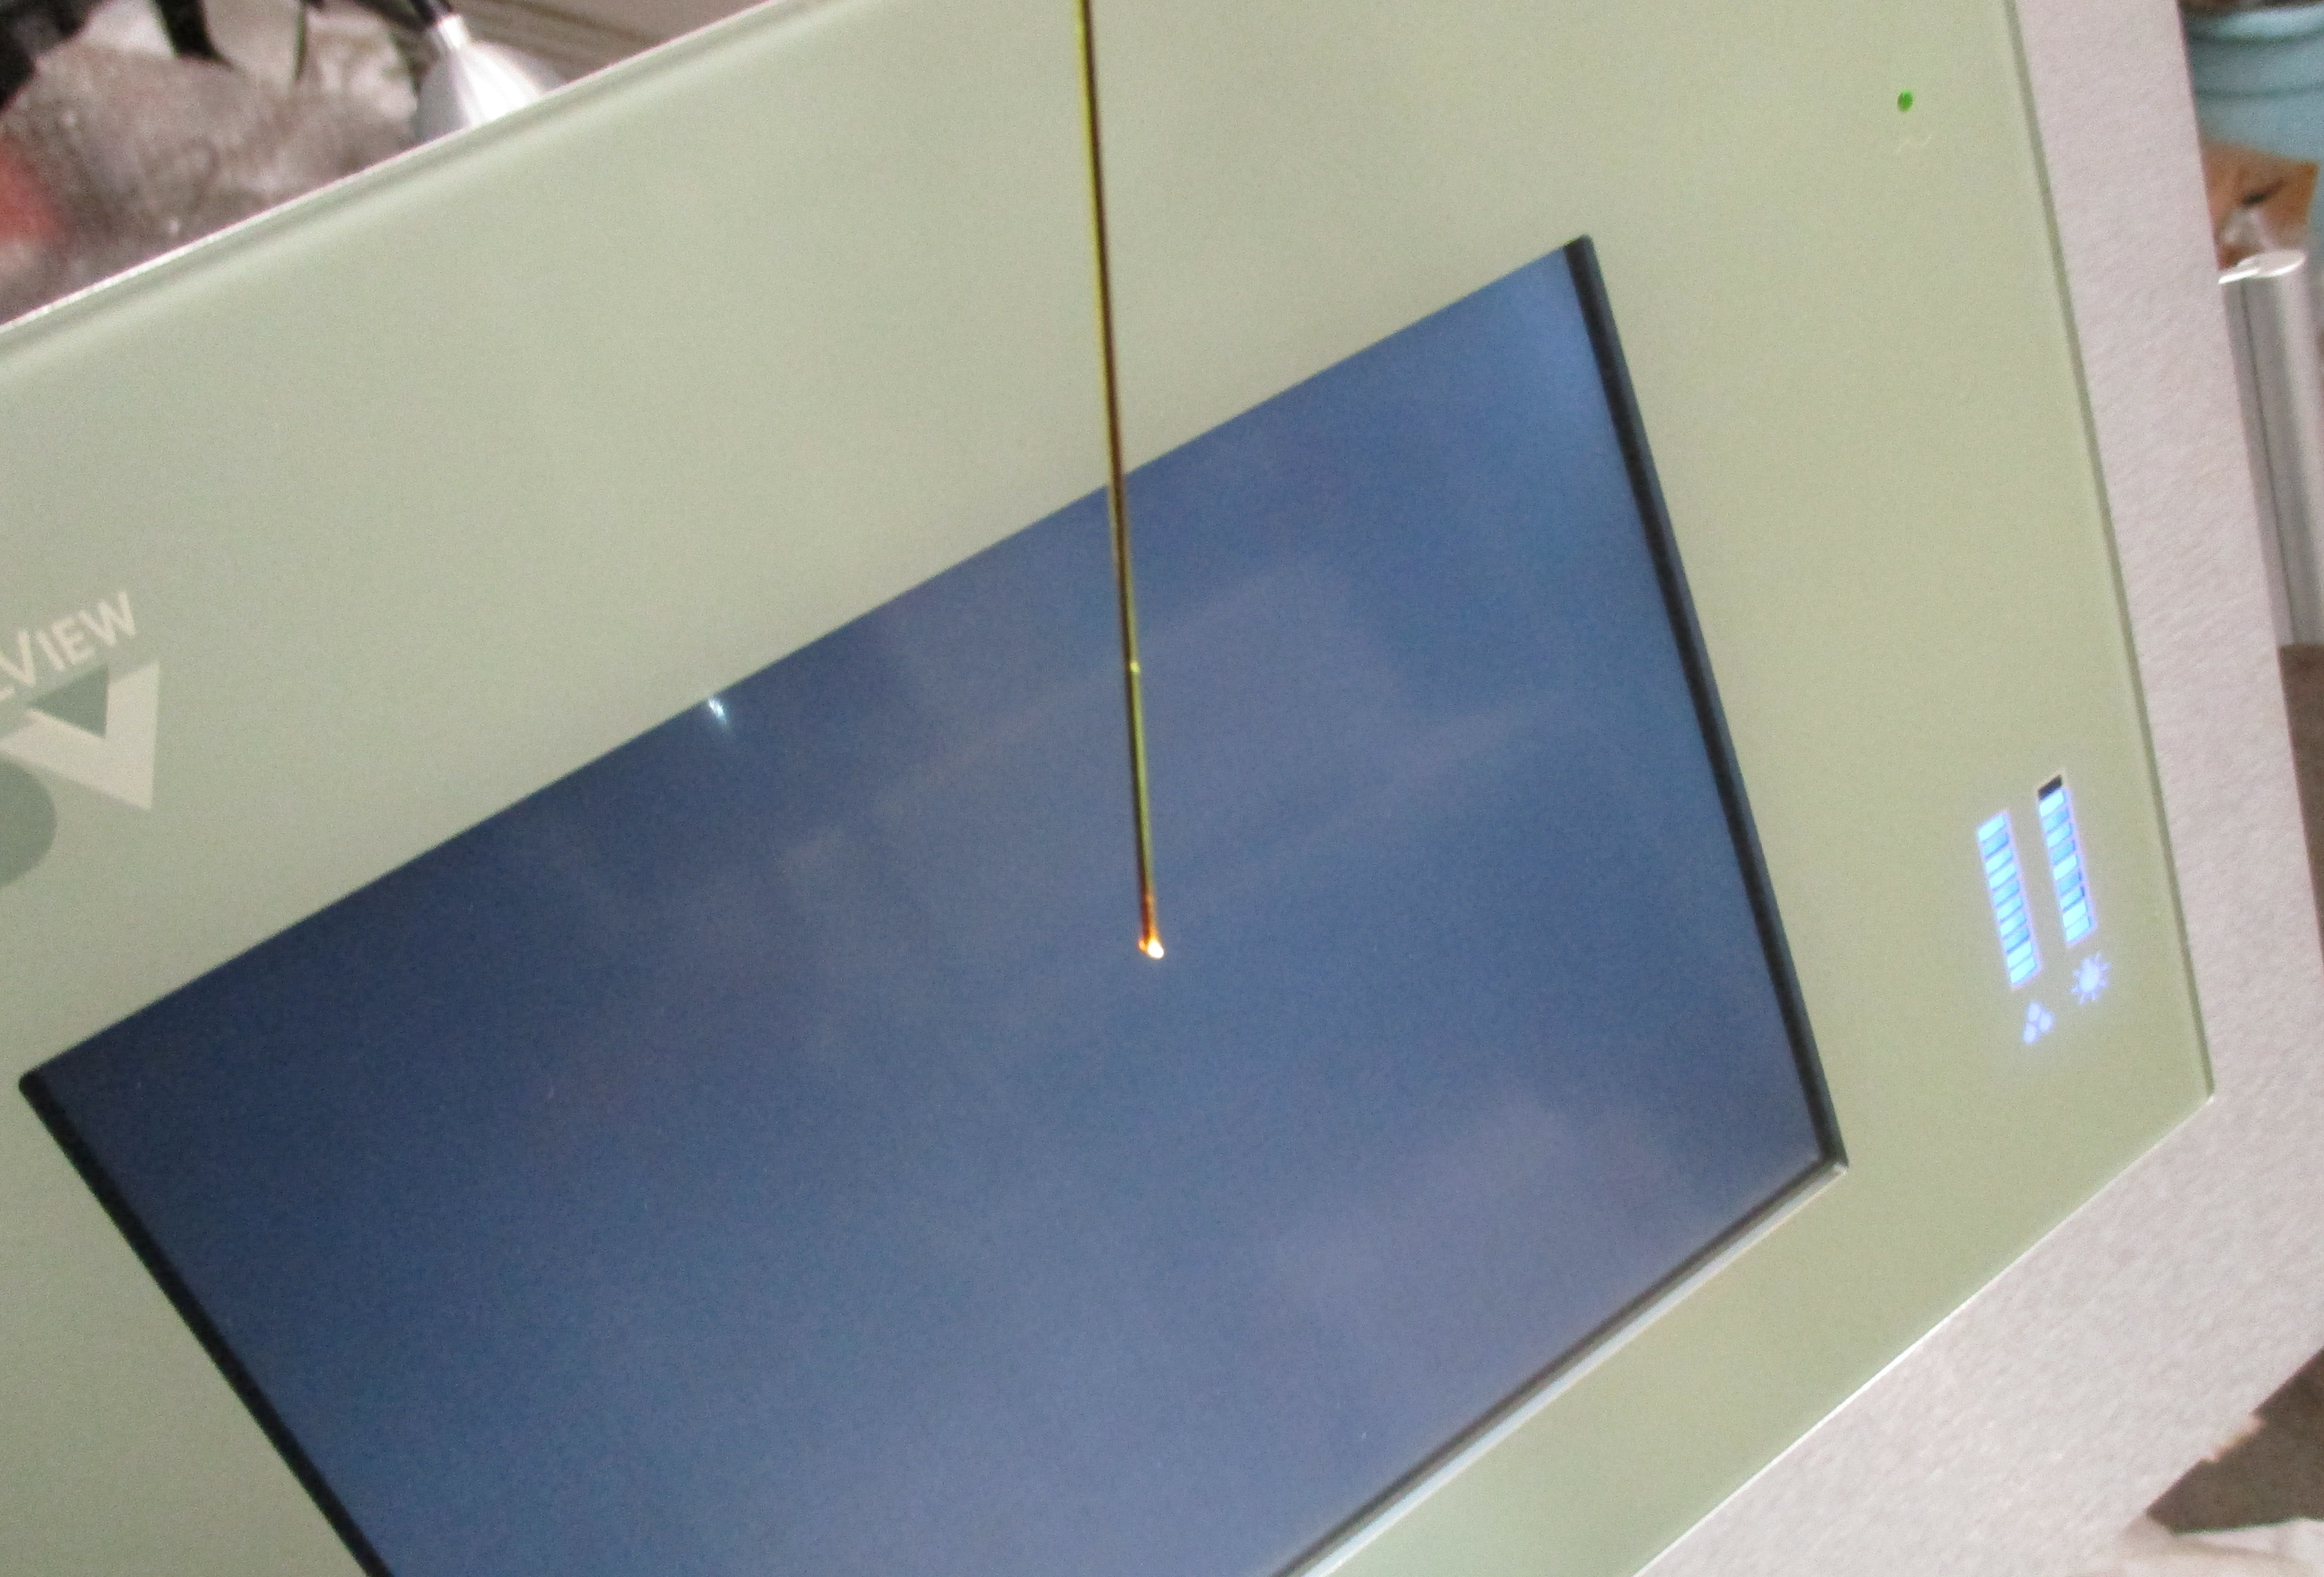 Dental View DV-2 Periscopy Endoscope System on wheeled stand - Image 11 of 14